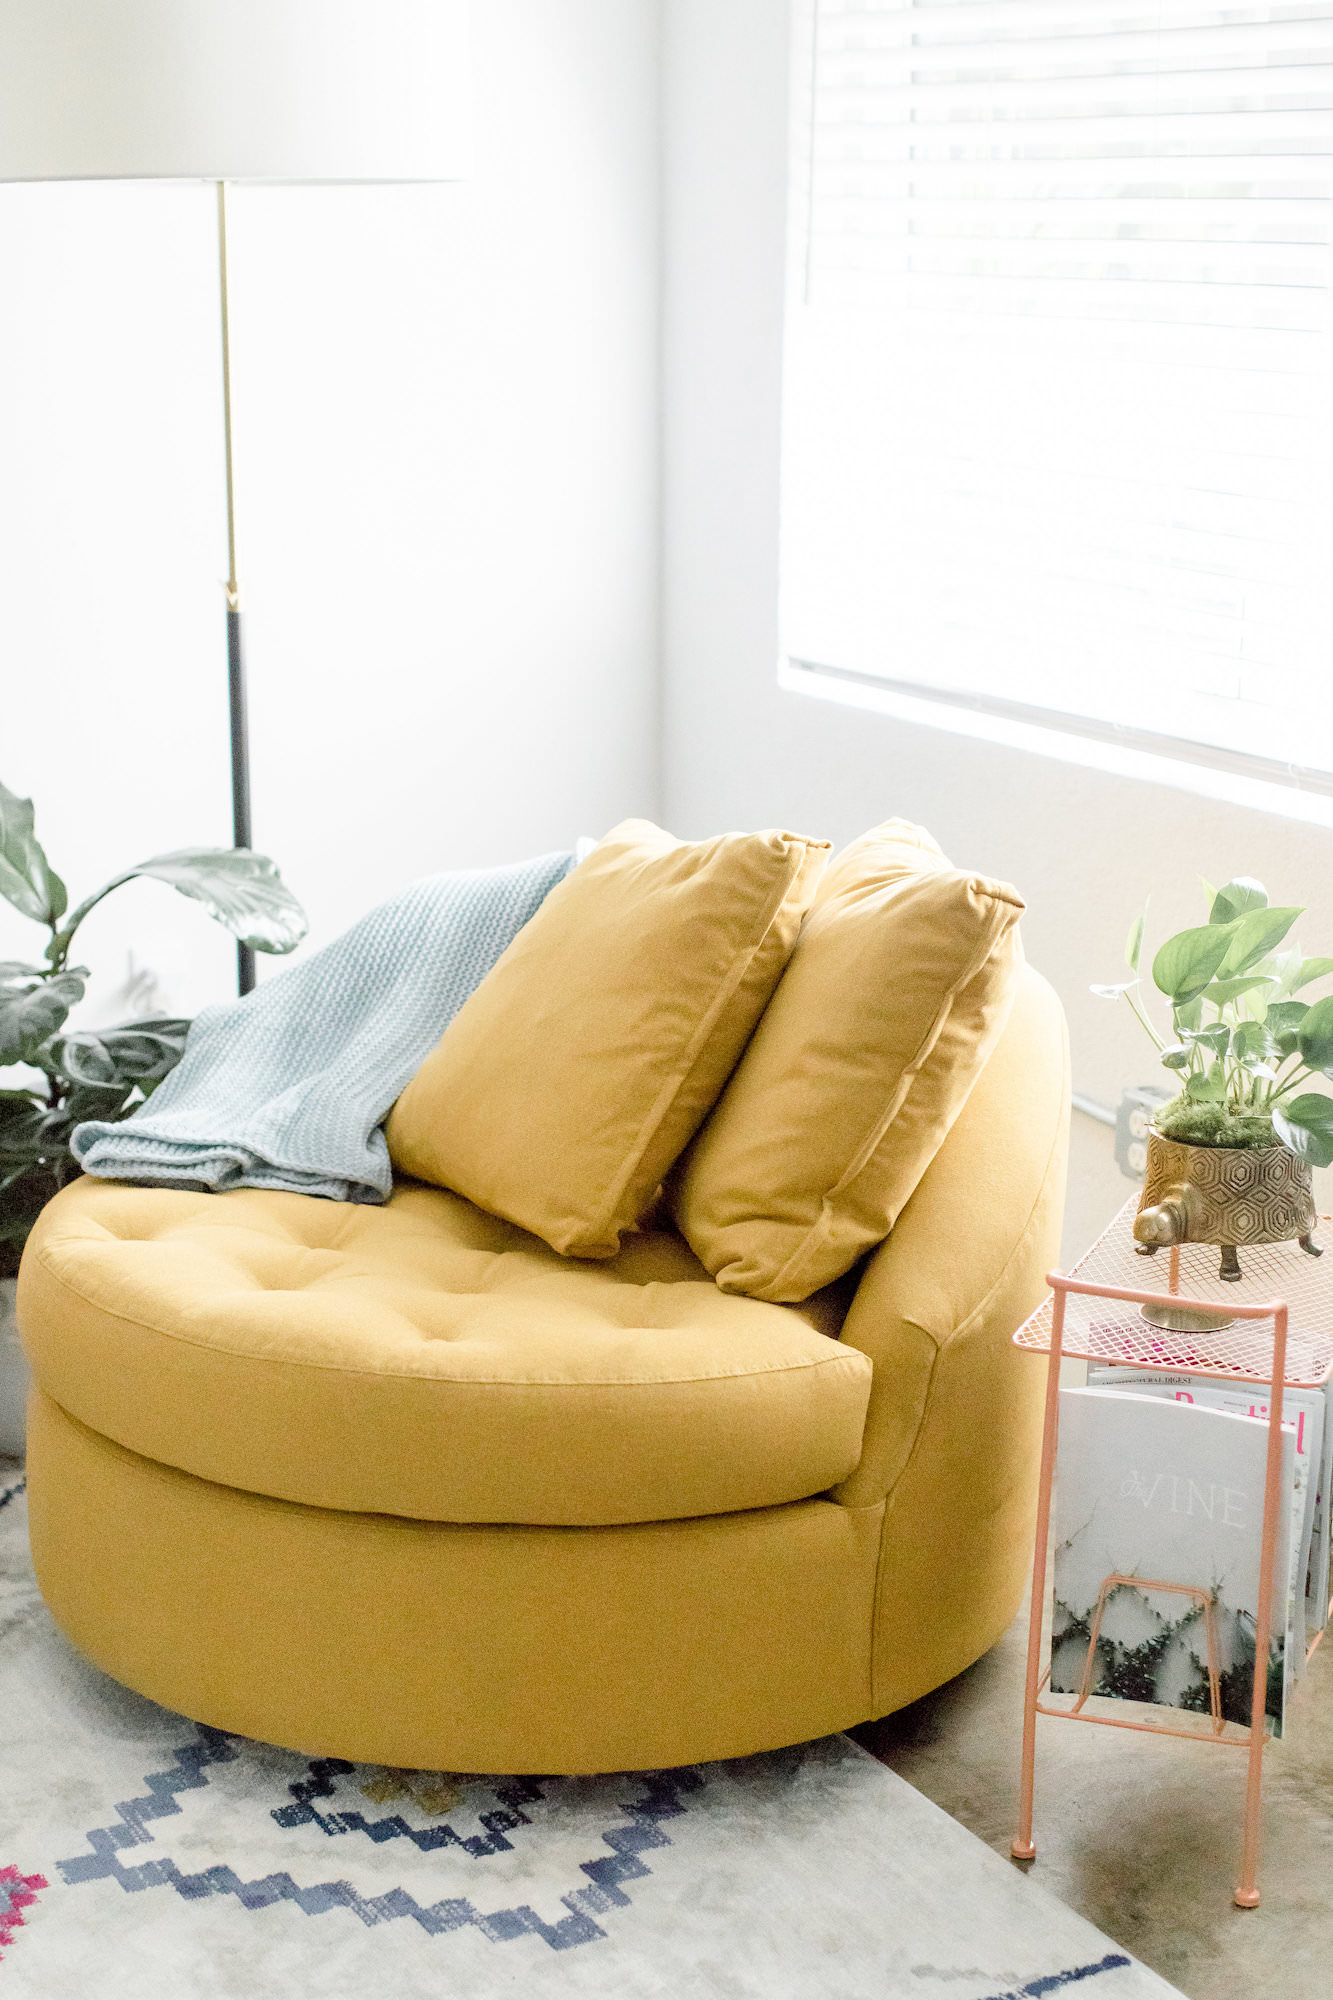 mid-century-modern-vacation-rental-the-park-circular-yellow-couch-web-res.jpg